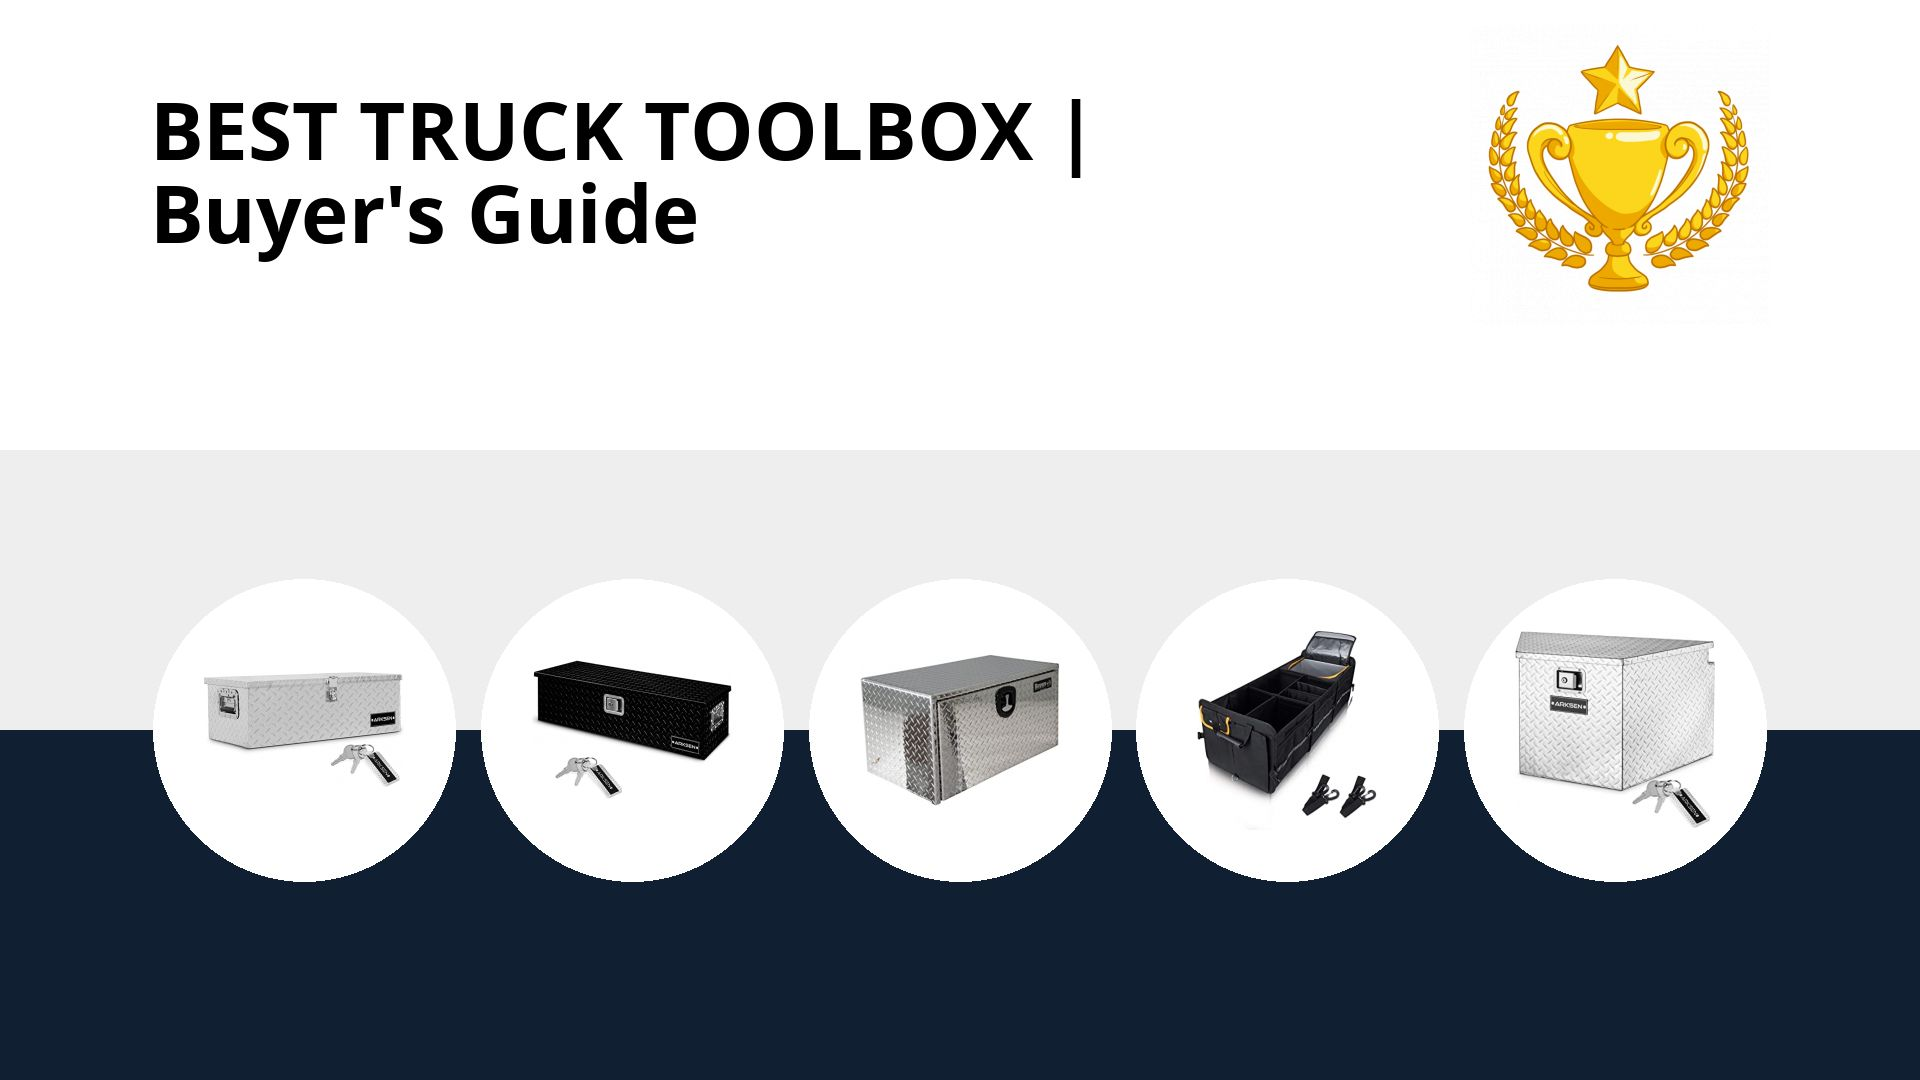 Best Truck Toolbox: image